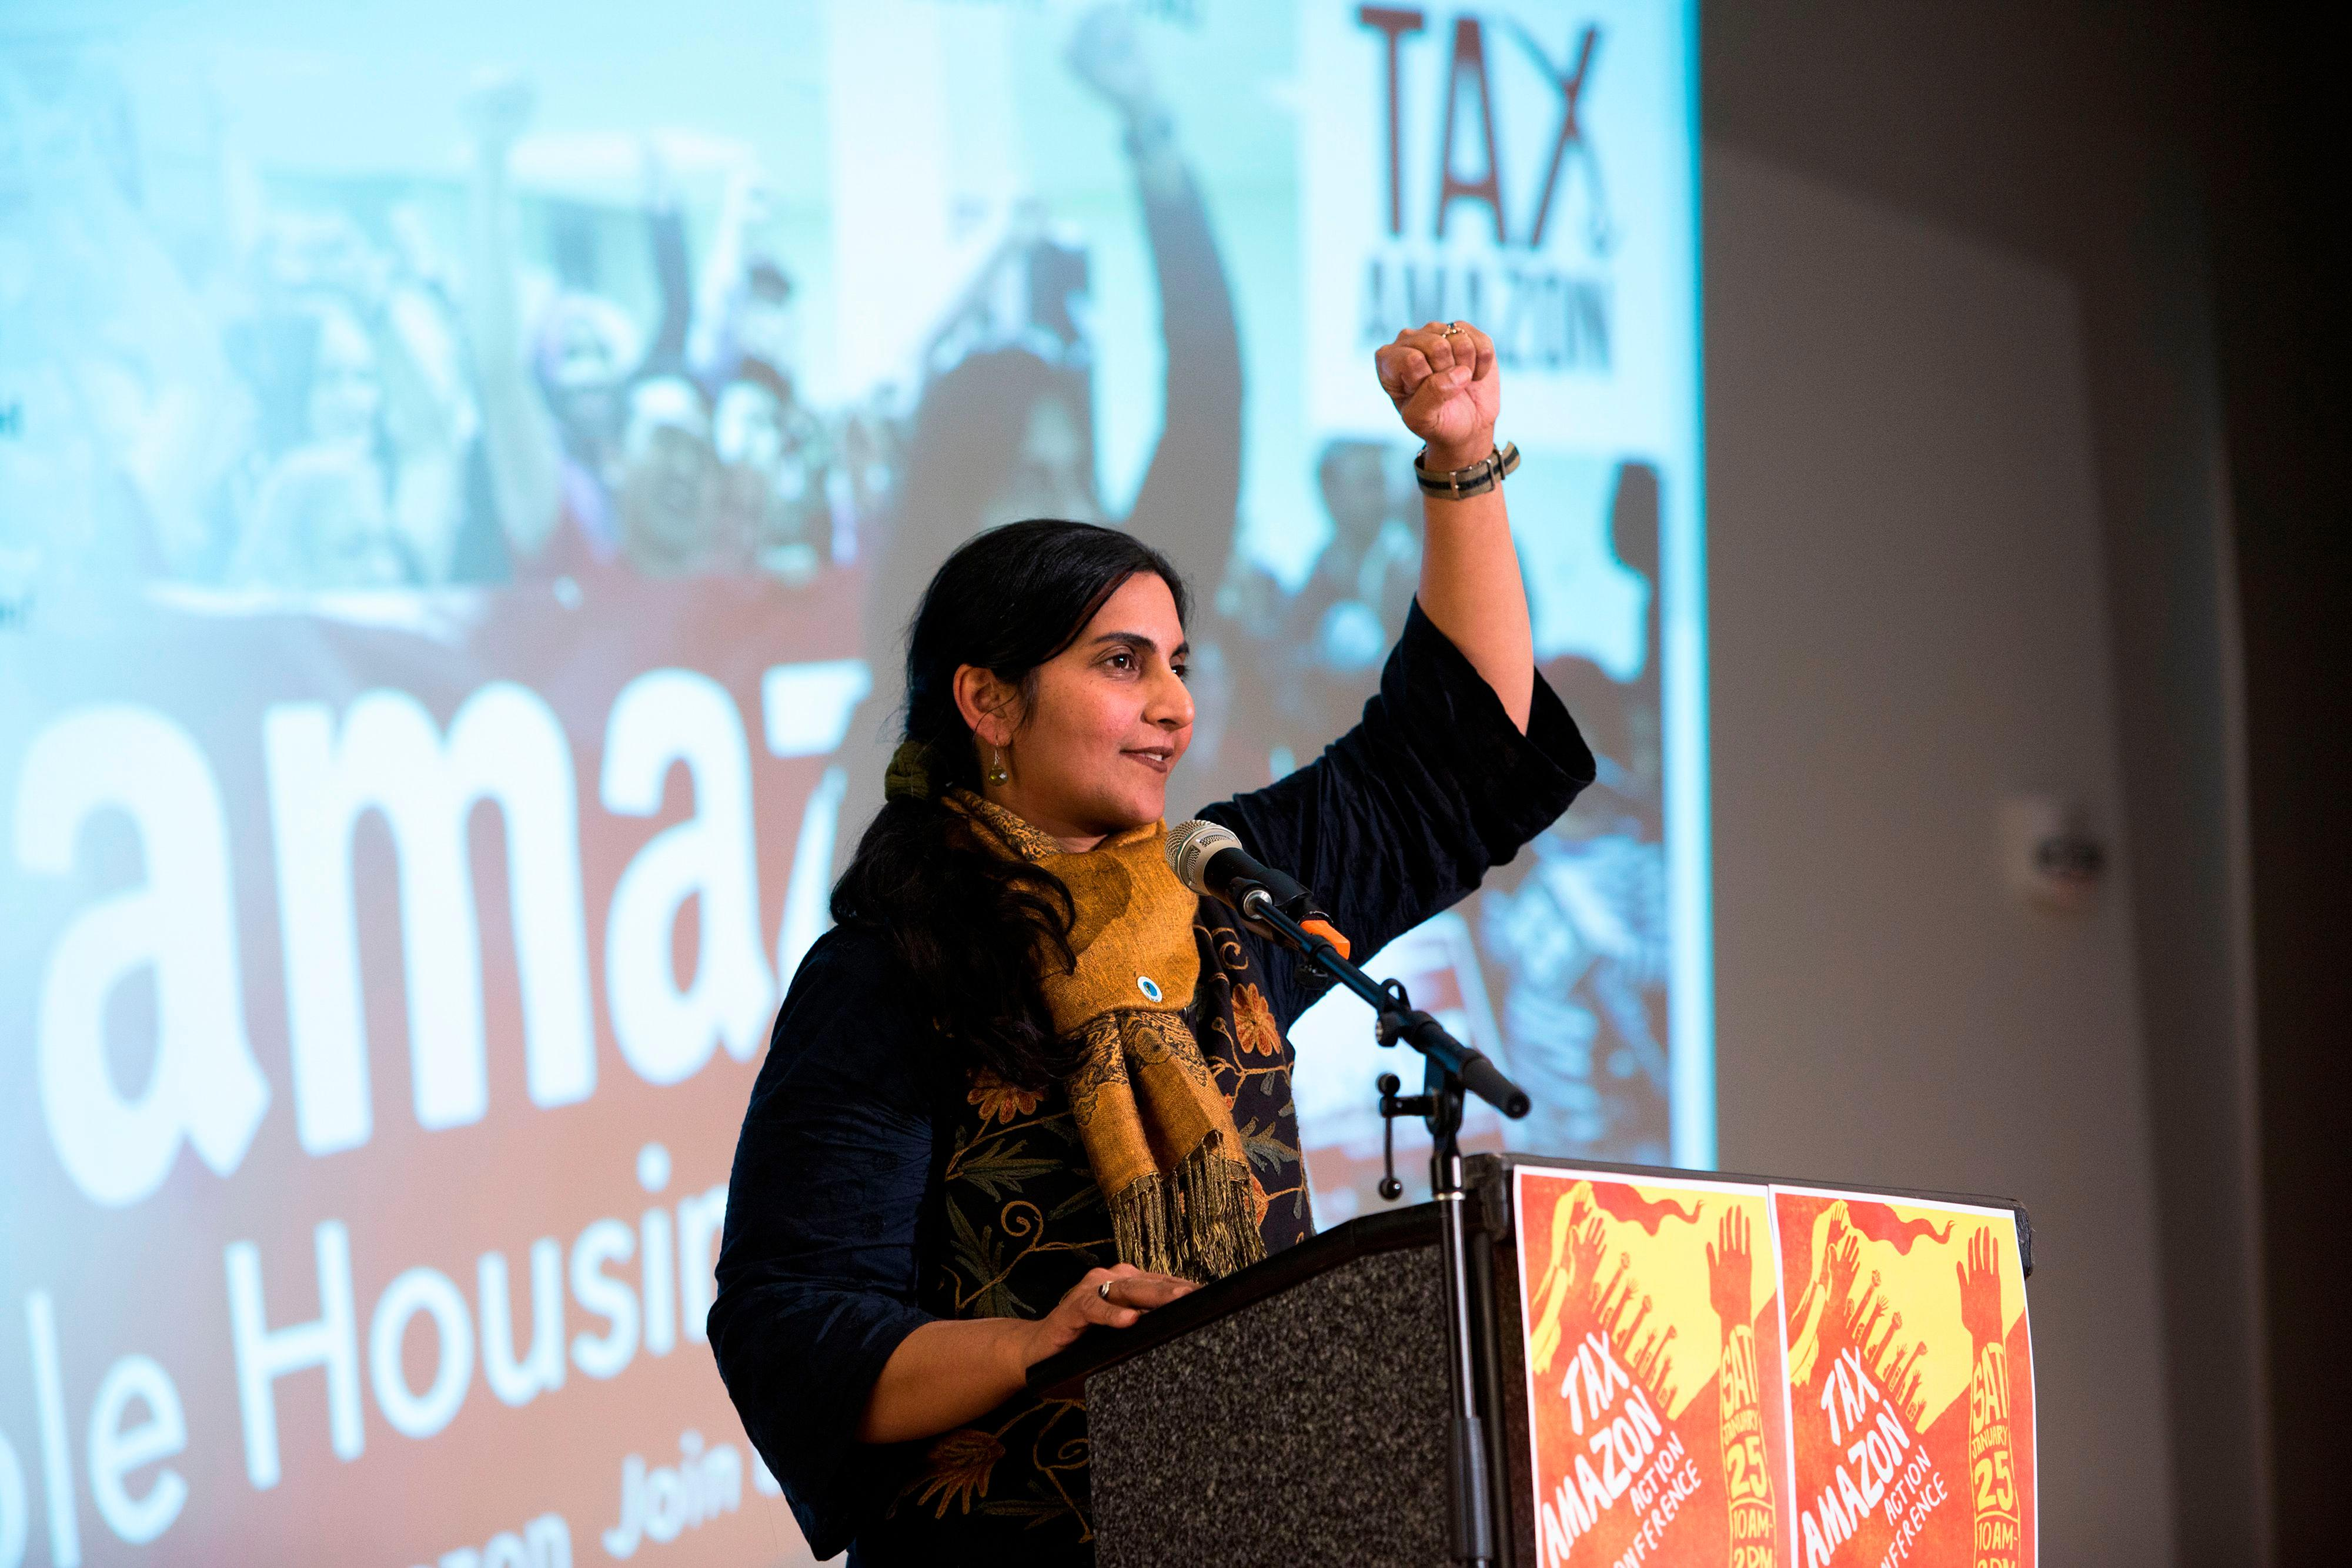 Kshama Sawant wants to tax Amazon so people can afford to live in Seattle. Can she pull it off?